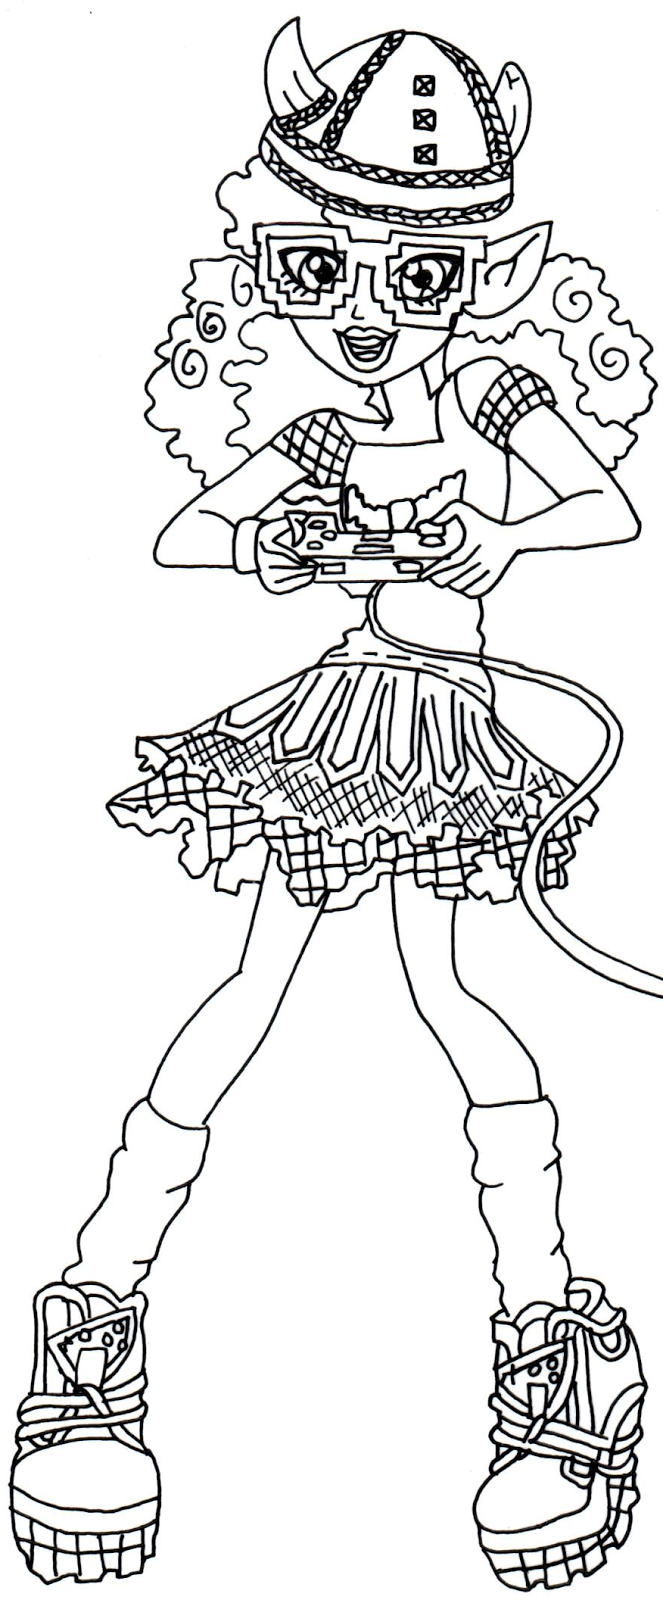 kjersti trollson monster high coloring page